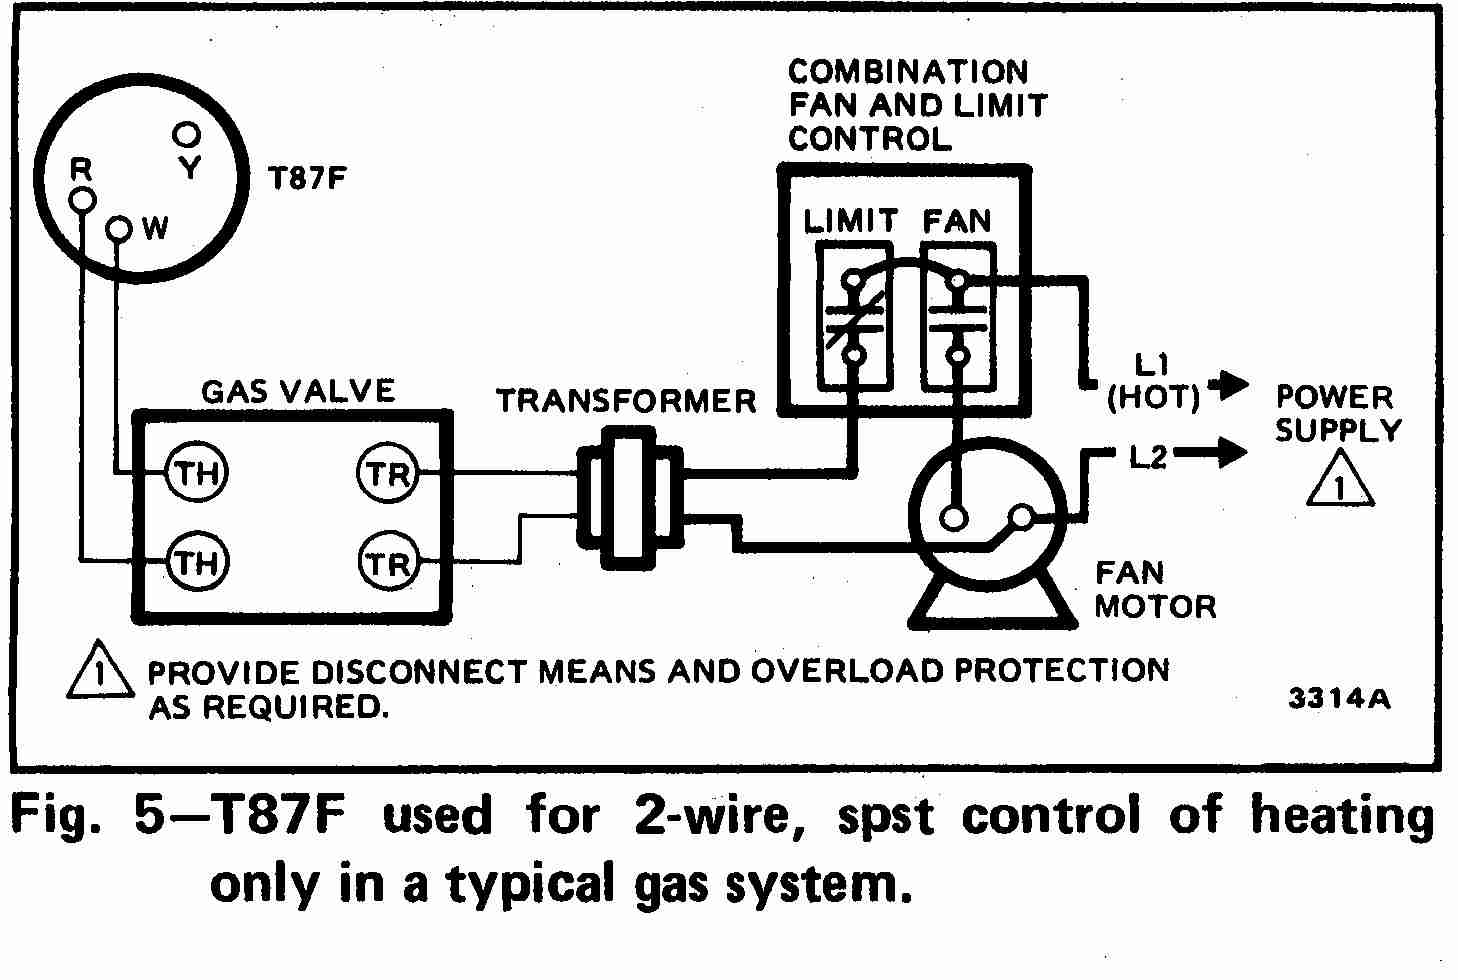 TT_T87F_0002_2Wg_DJF guide to wiring connections for room thermostats honeywell thermostat wiring diagram 4 wire at bayanpartner.co